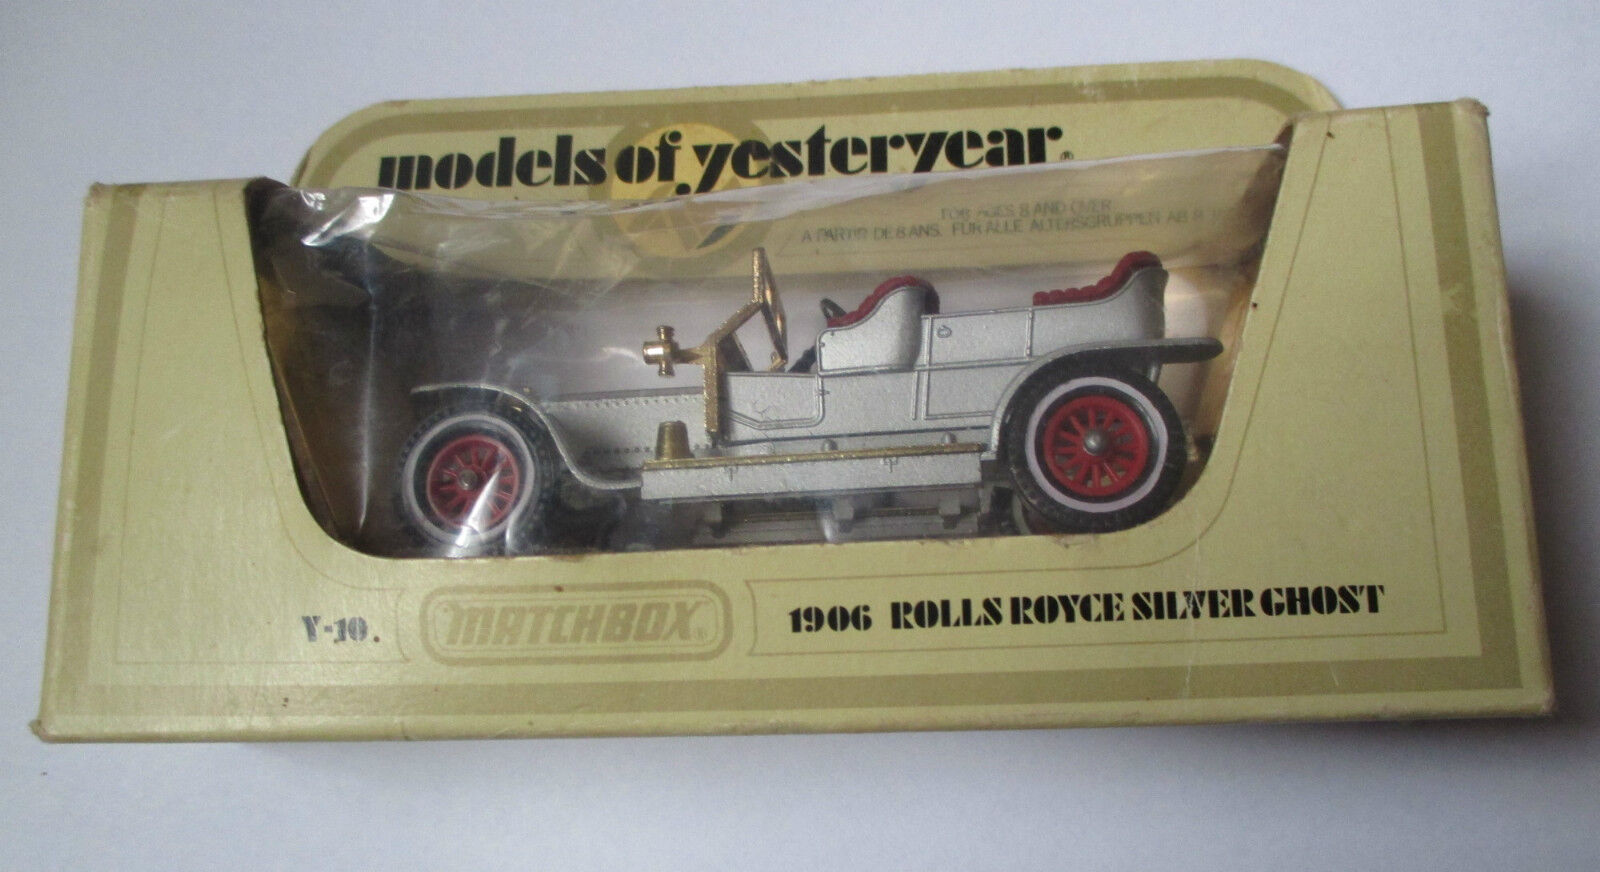 Voiture miniature   Rolls Royce 1906 (matchbox Y-10 1978 models of yesterday)